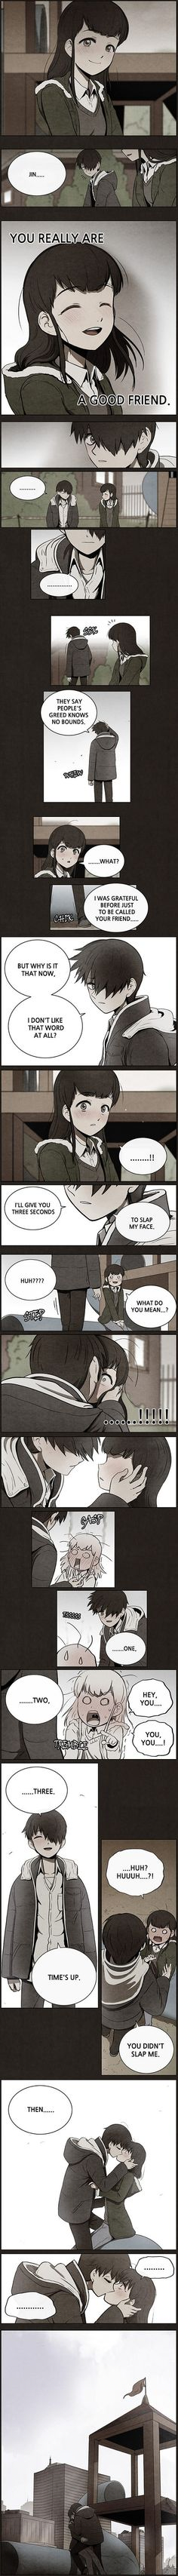 This scene is from my favorite web comic, Bastard! It's an amazing story, you can check it out on the app, Webtoon!! I highly recommend it!! ✨✨✨